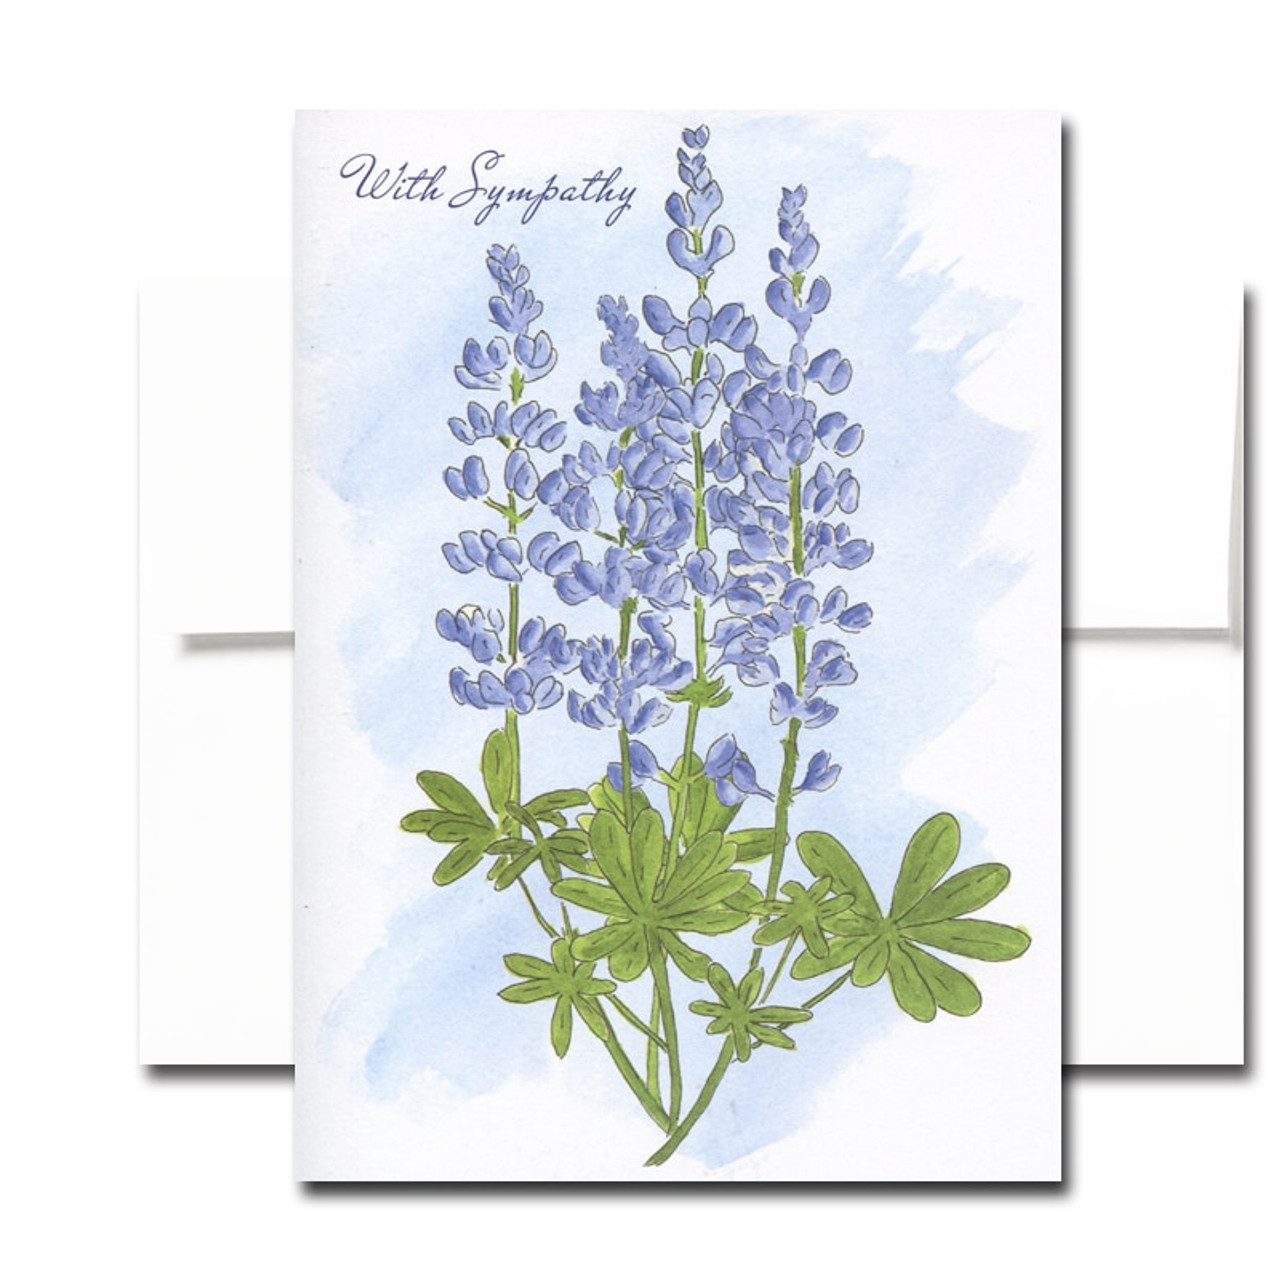 Blank Sympathy Card: Lupine. Hand-painted watercolor illustration.